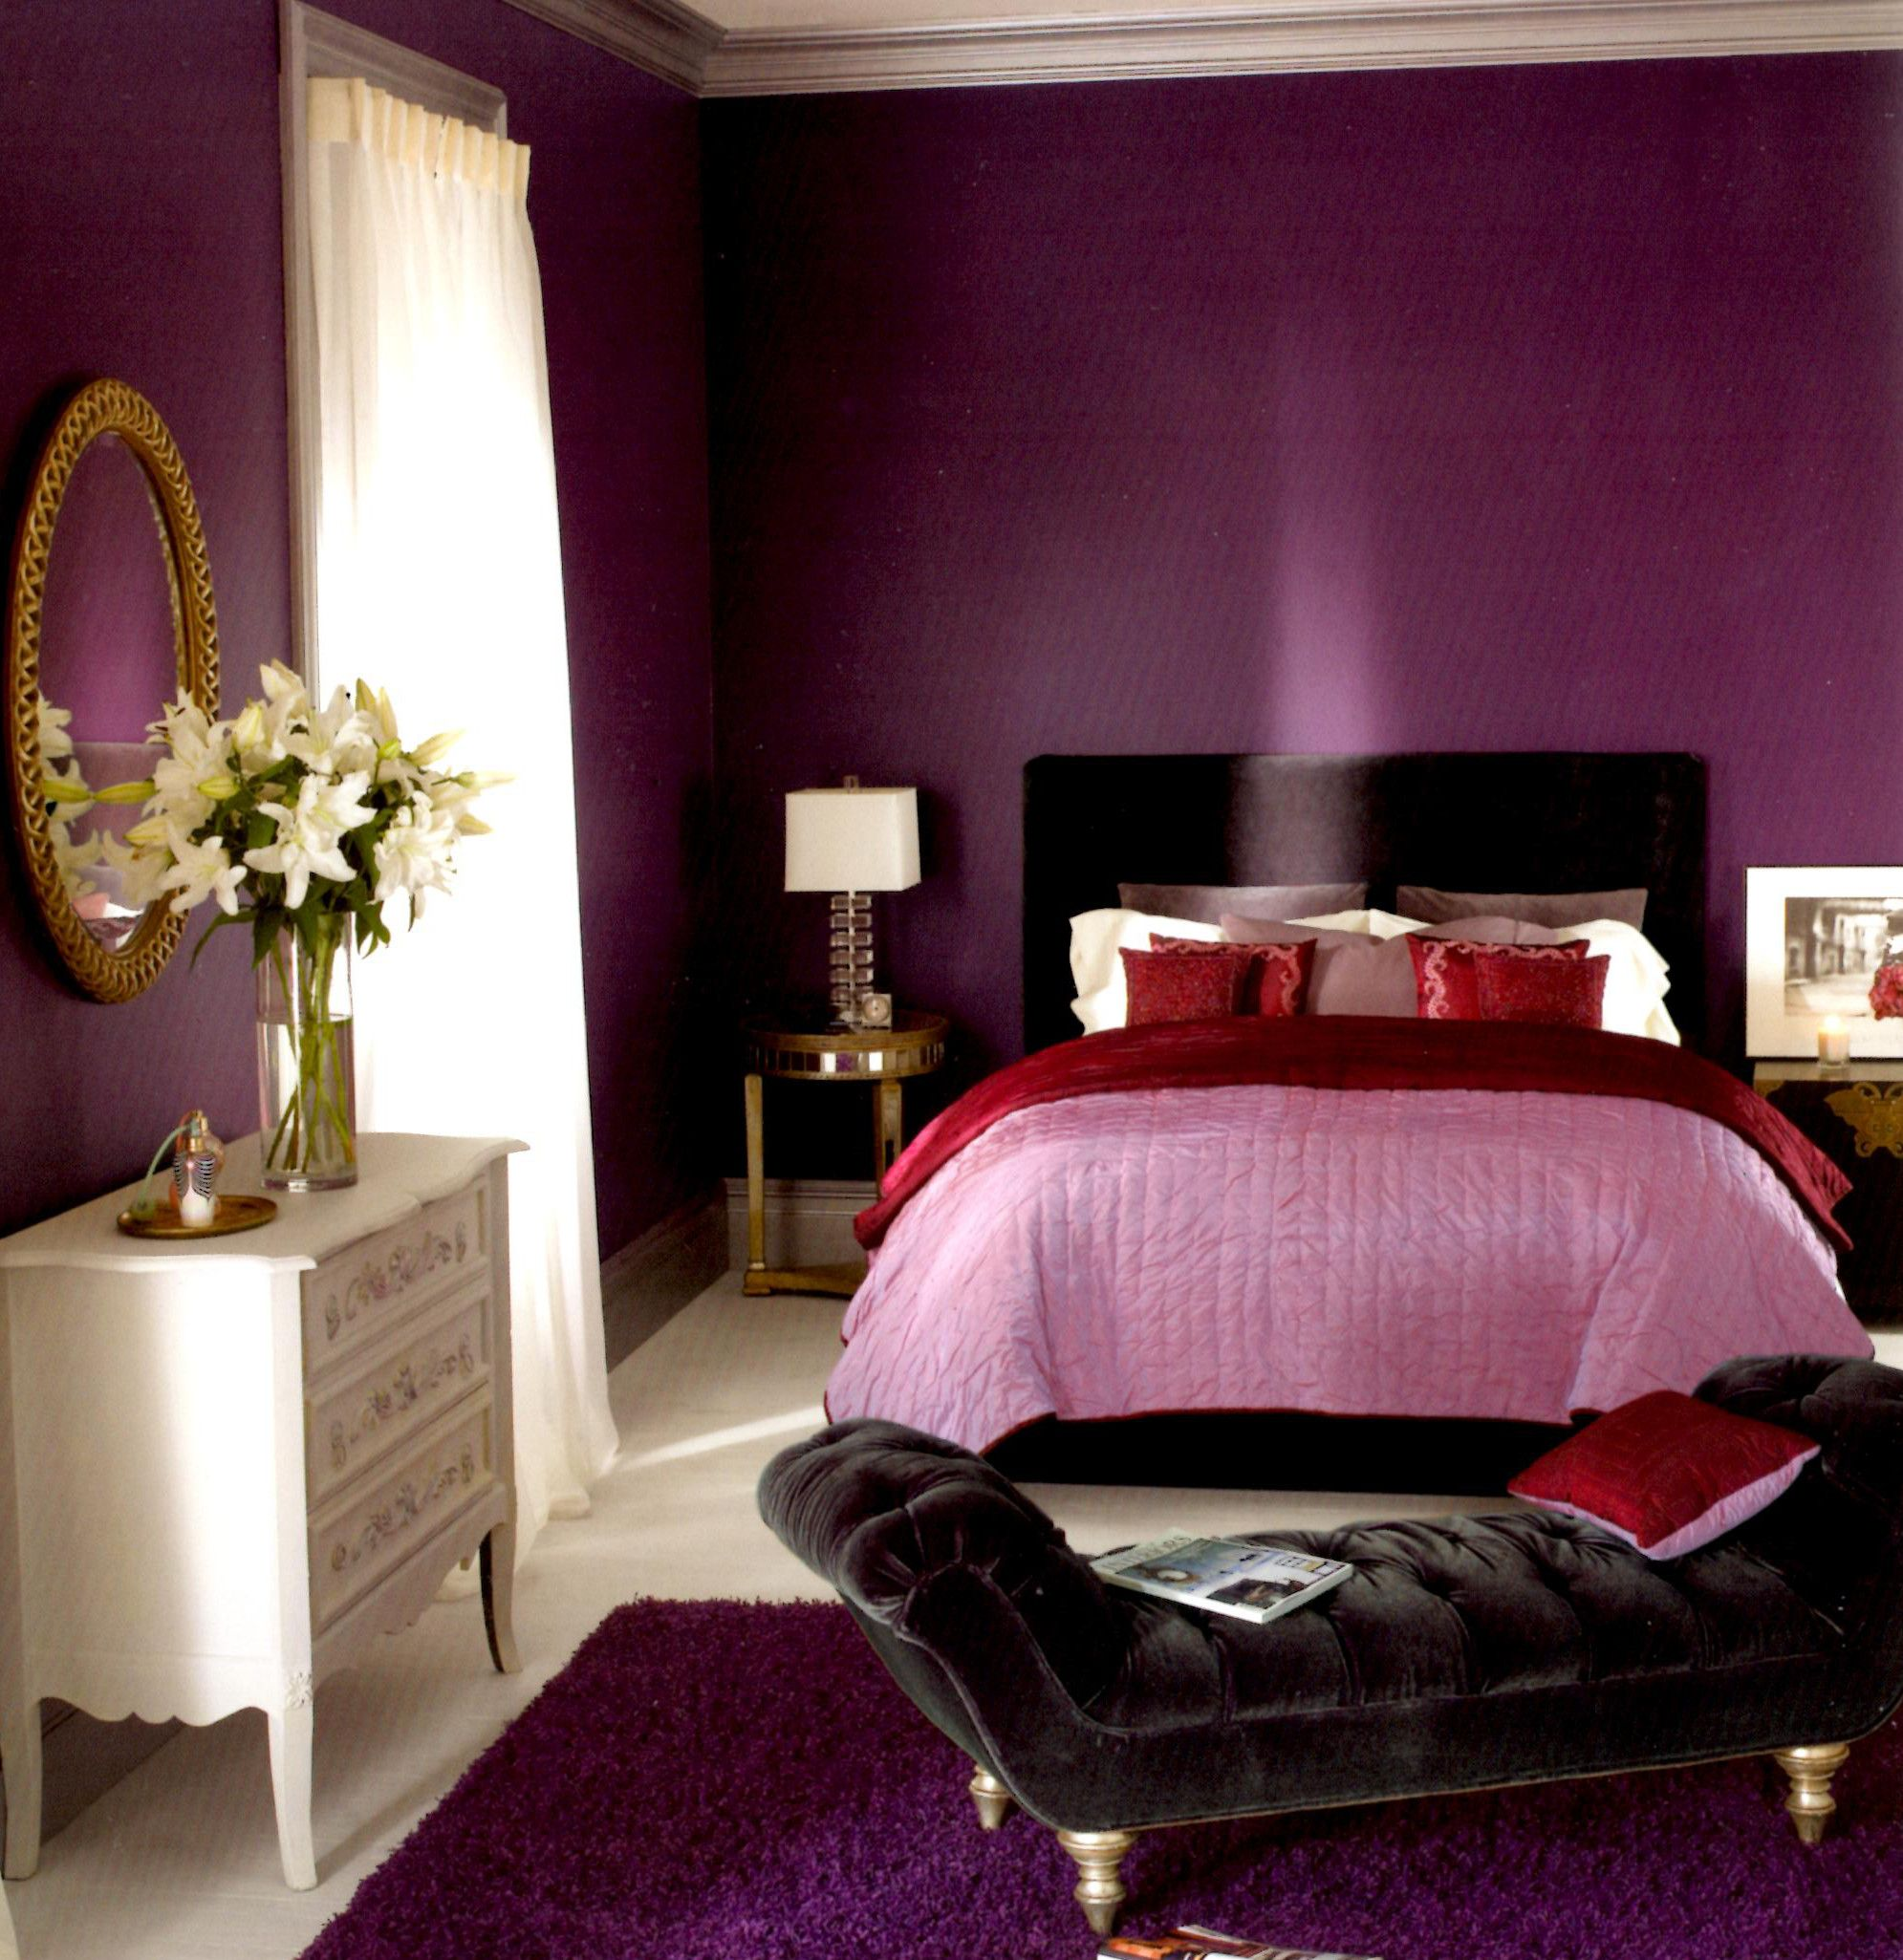 Bedroom wall painting ideas in pink color - Remarkable Purple Wall Paneling Colors As Smart Bedroom Paint Ideas In Teenage Bedroom Decor Also White